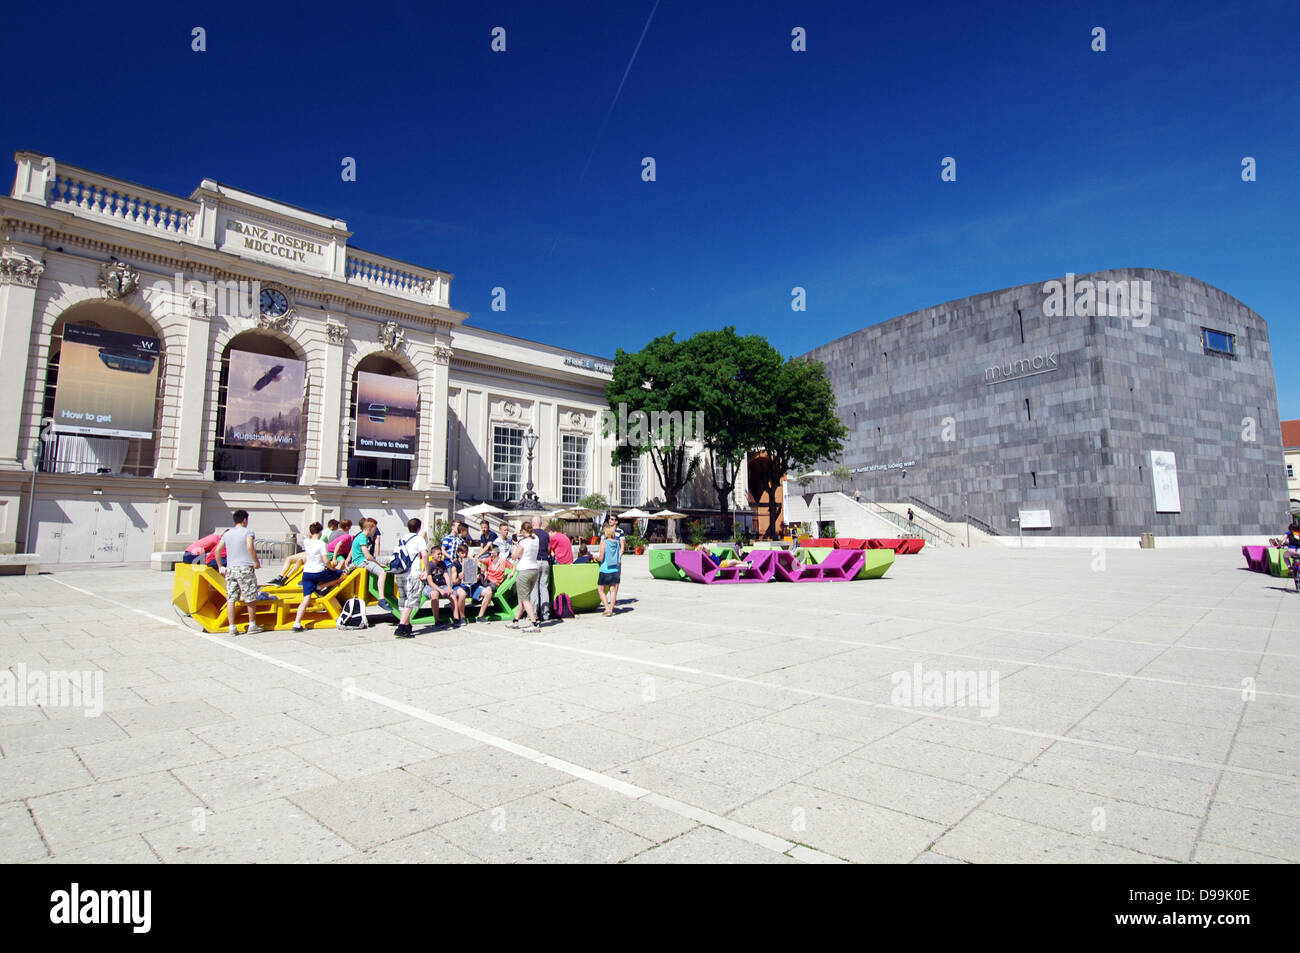 Kunsthalle Wien on the left and mumok (MUseum MOderner Kunst - Museum of Modern Art) on the right - Vienna, Austria - Stock Image